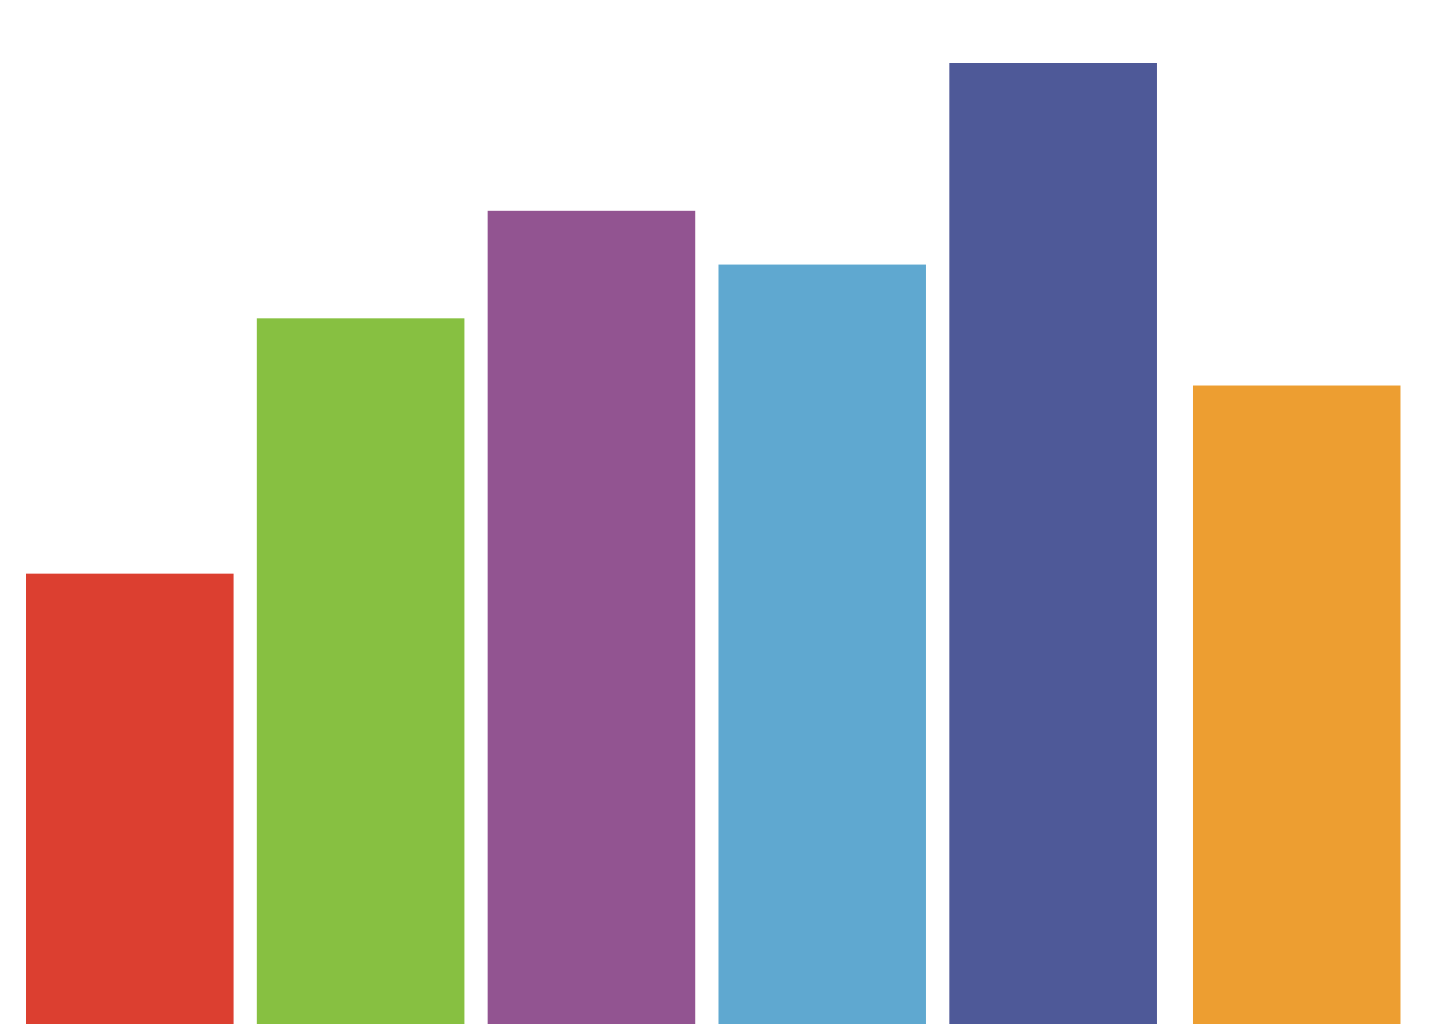 Svg d3 rect. Dynamic graphs with angular